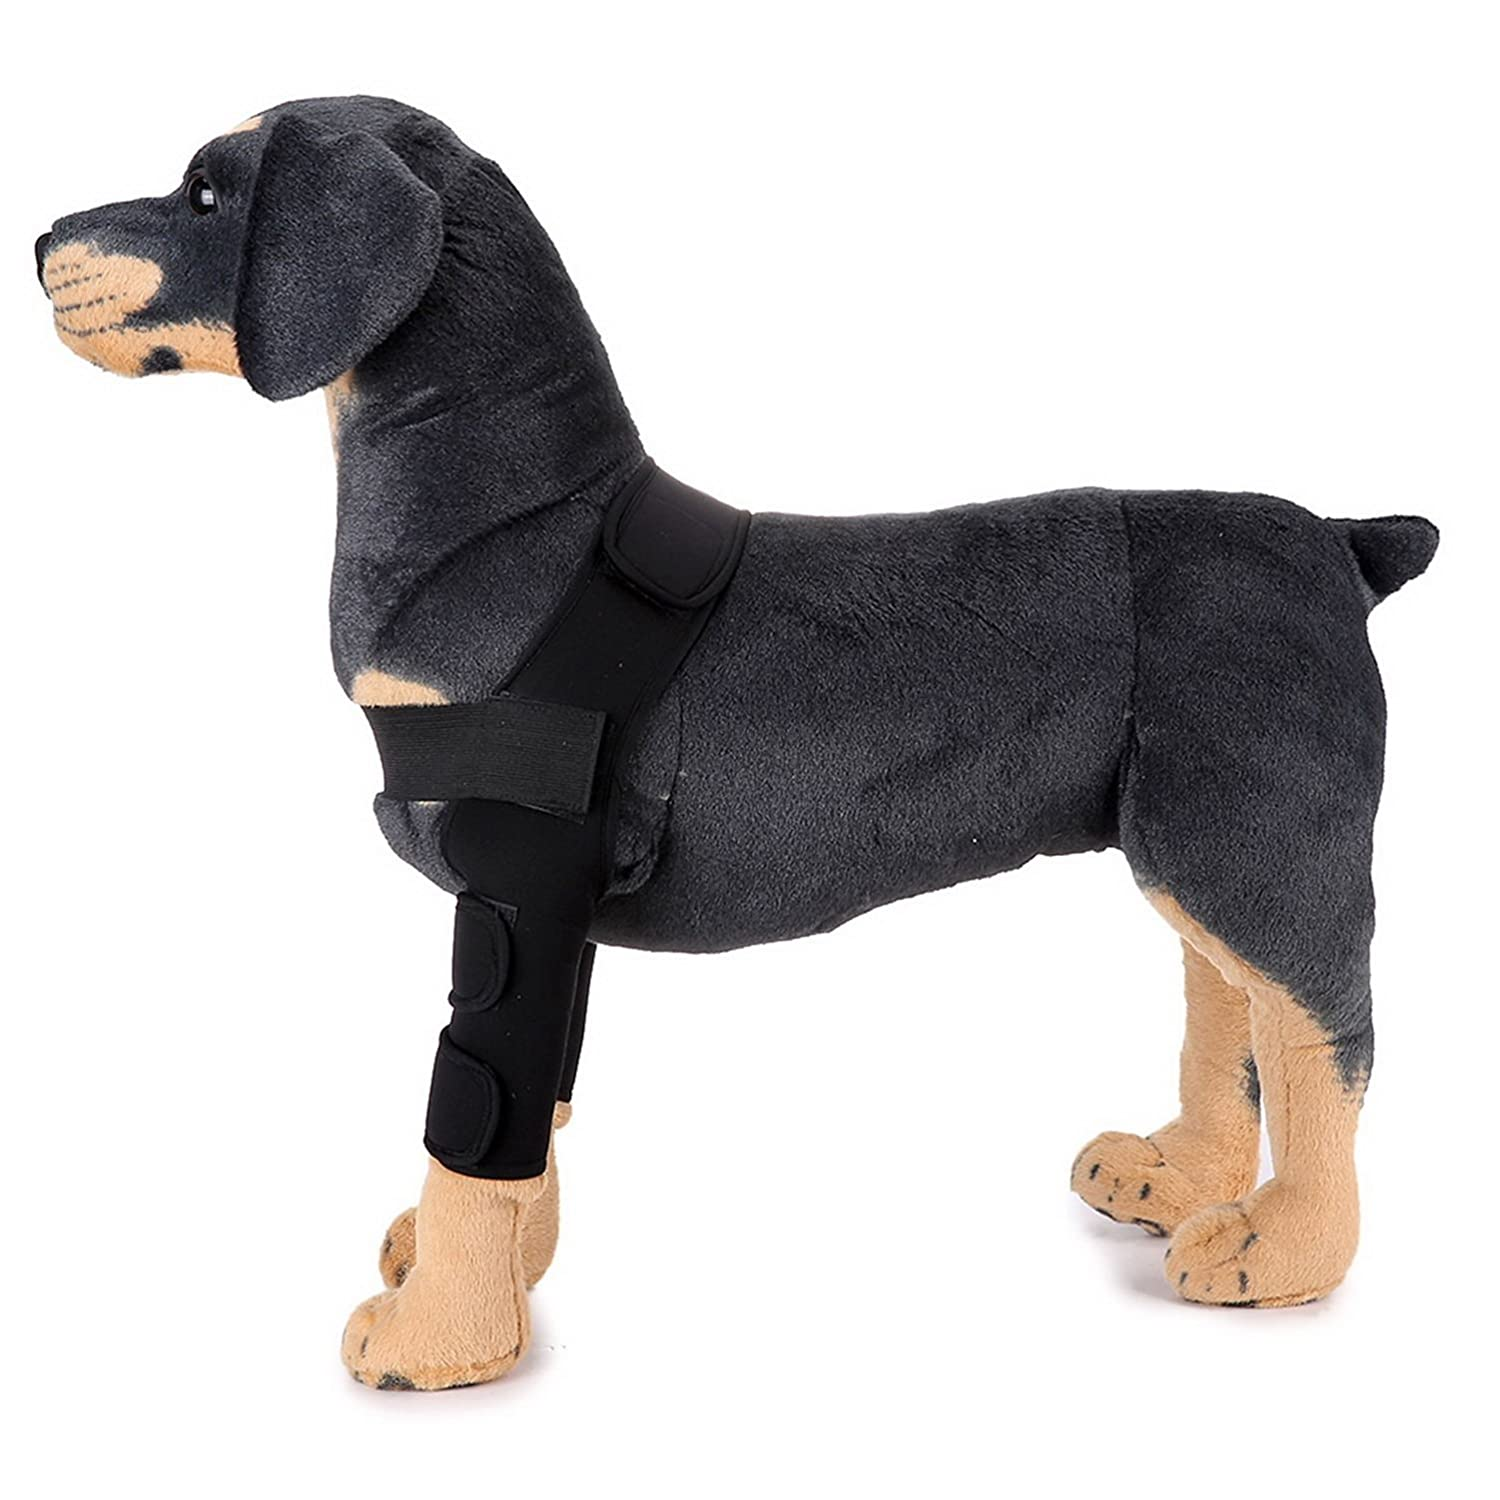 SELMAI Dog Front Leg Brace Support Canine Paw Compression Wrap Shoulder  Protects Wounds Brace Extra Supportive Hock Joint for Heals Prevents  Injuries